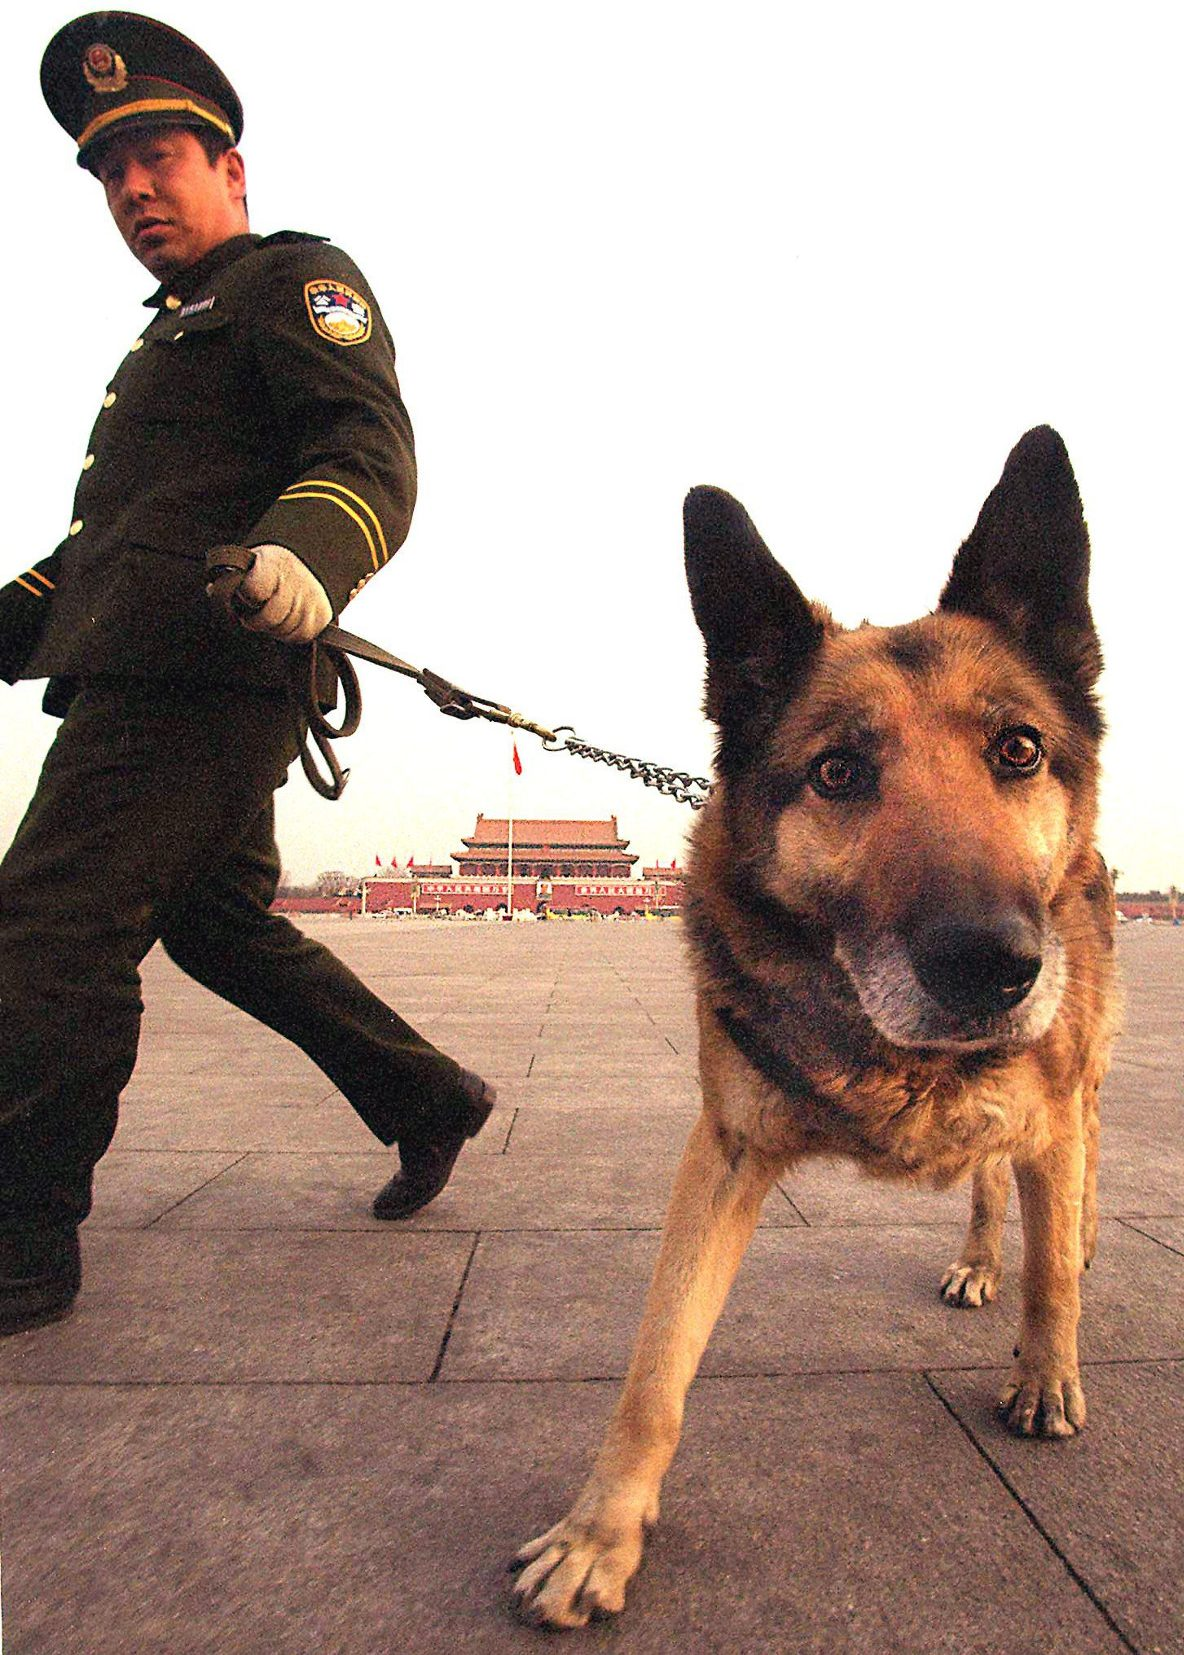 Dogs Remain Man's Best Friend for Sniffing Out Bombs or Drugs